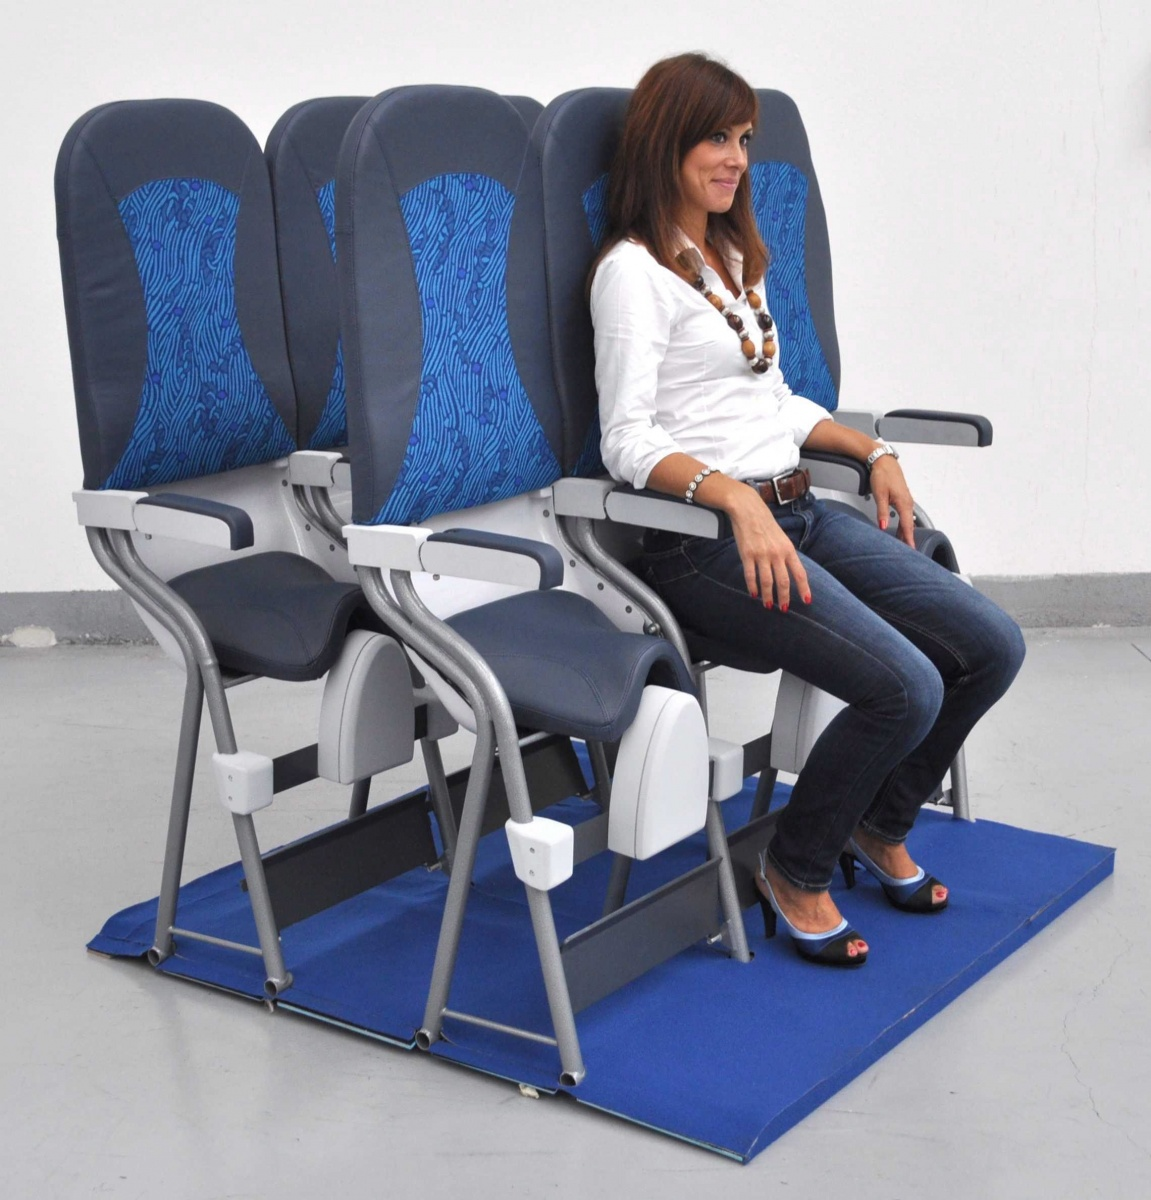 Would you ride in these freaky standing airplane seats?